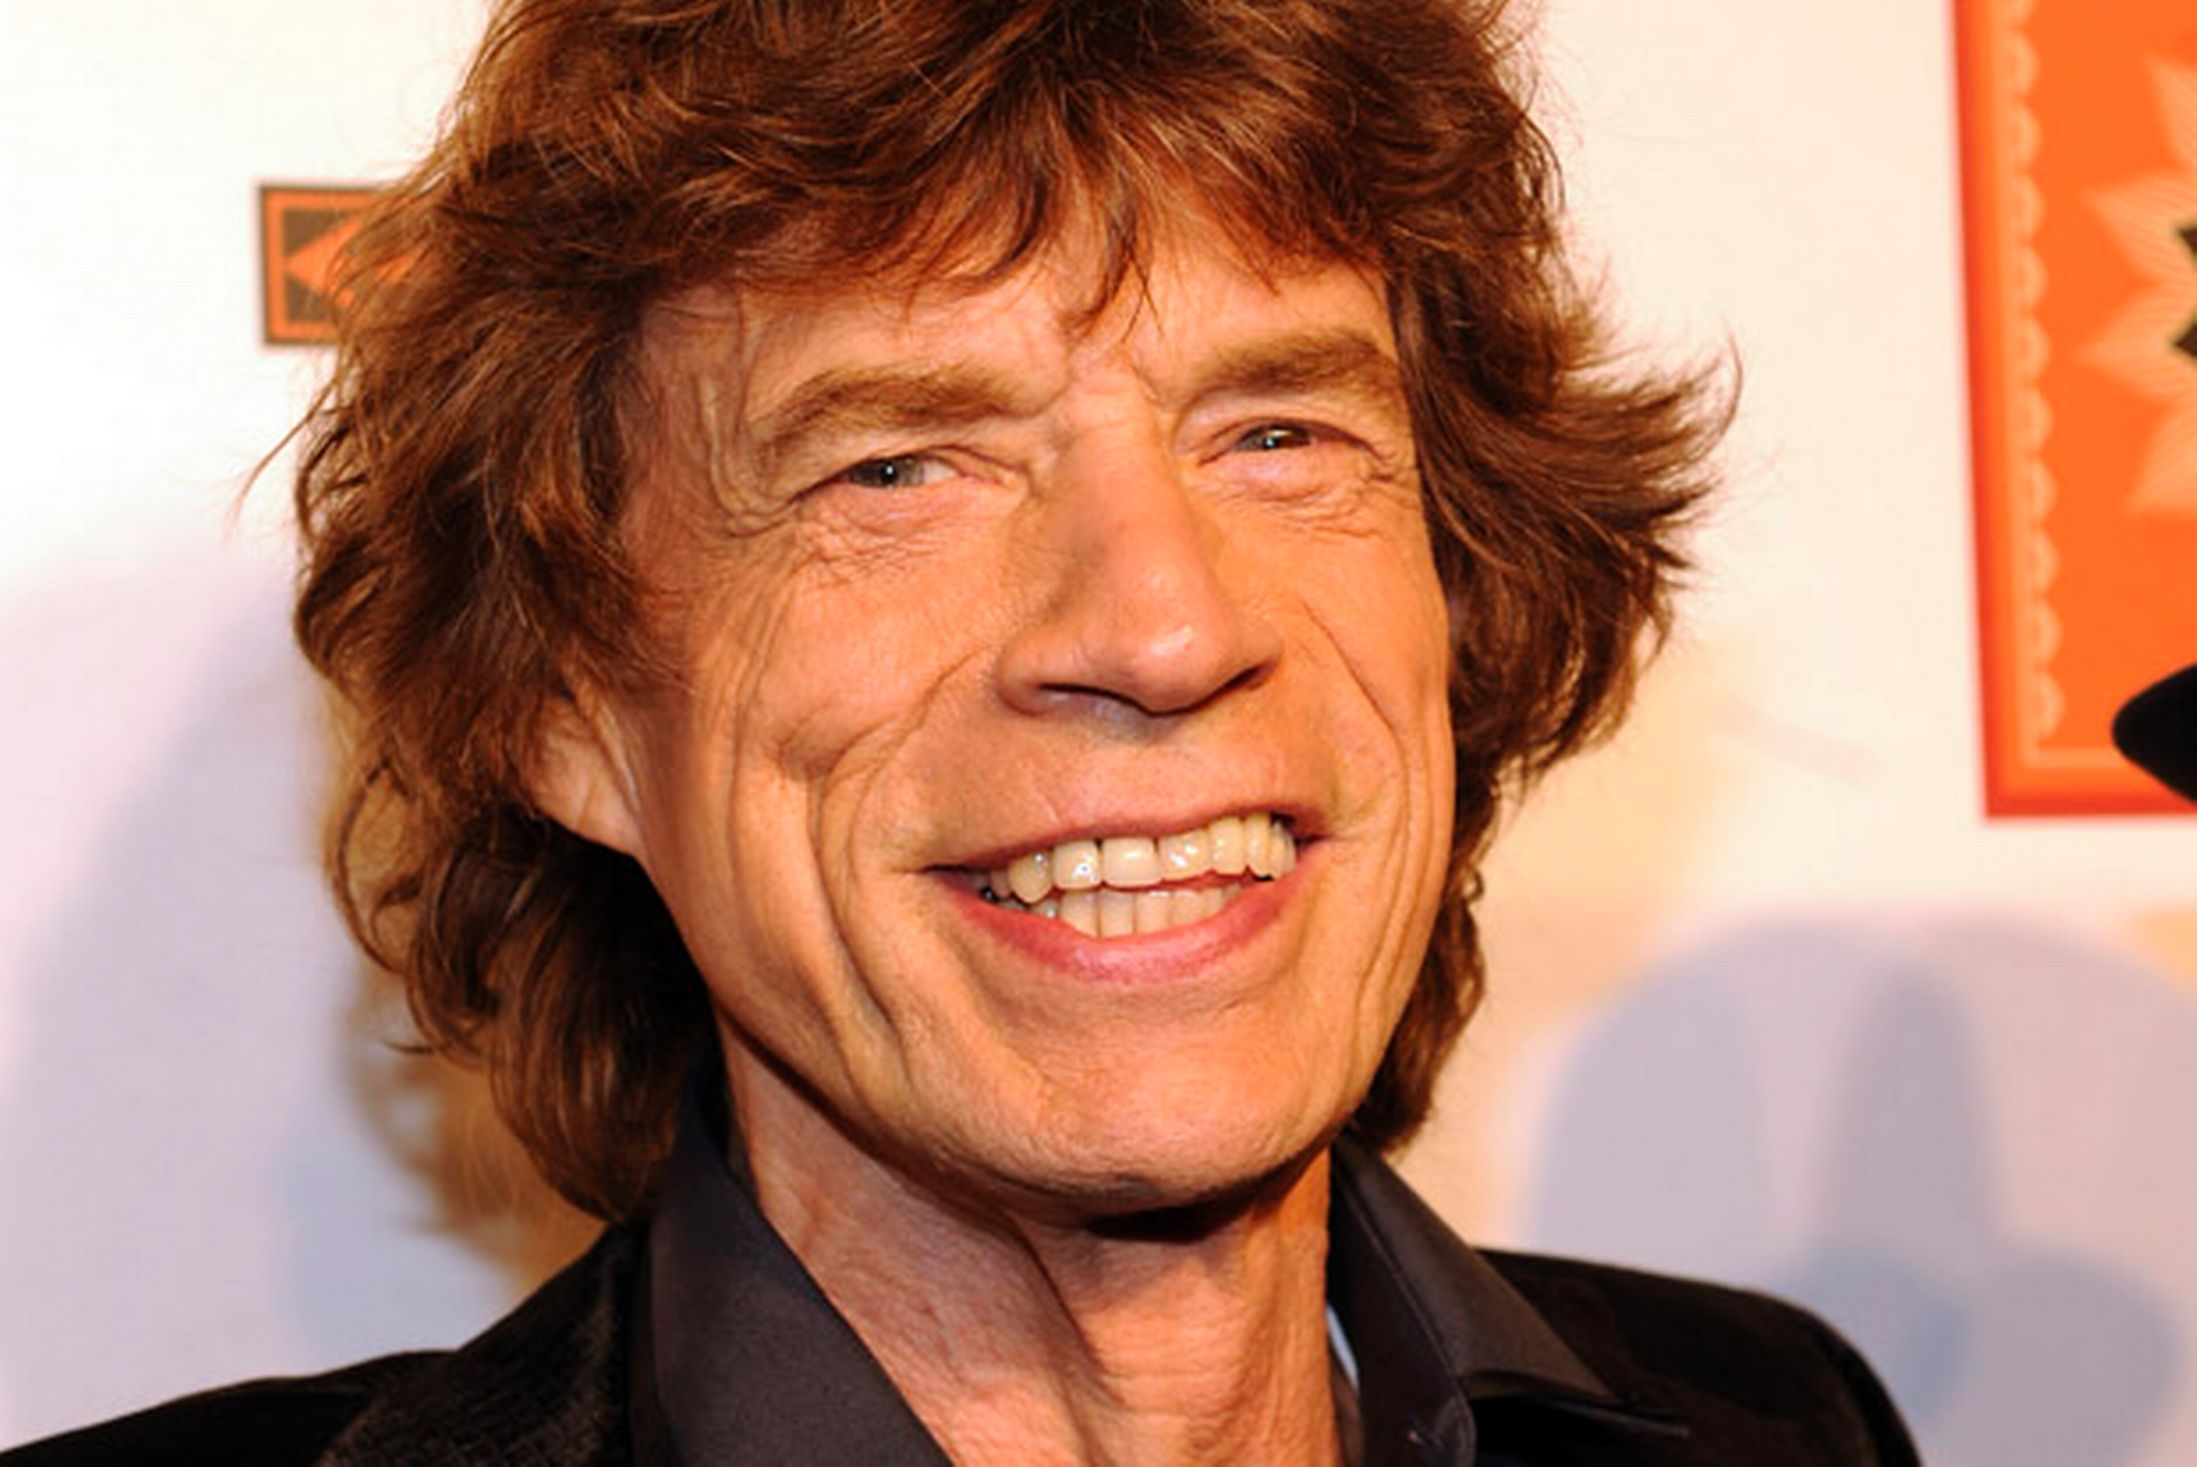 The Rolling Stones Lead Singer Mick Jagger Will Become Great Grandfather